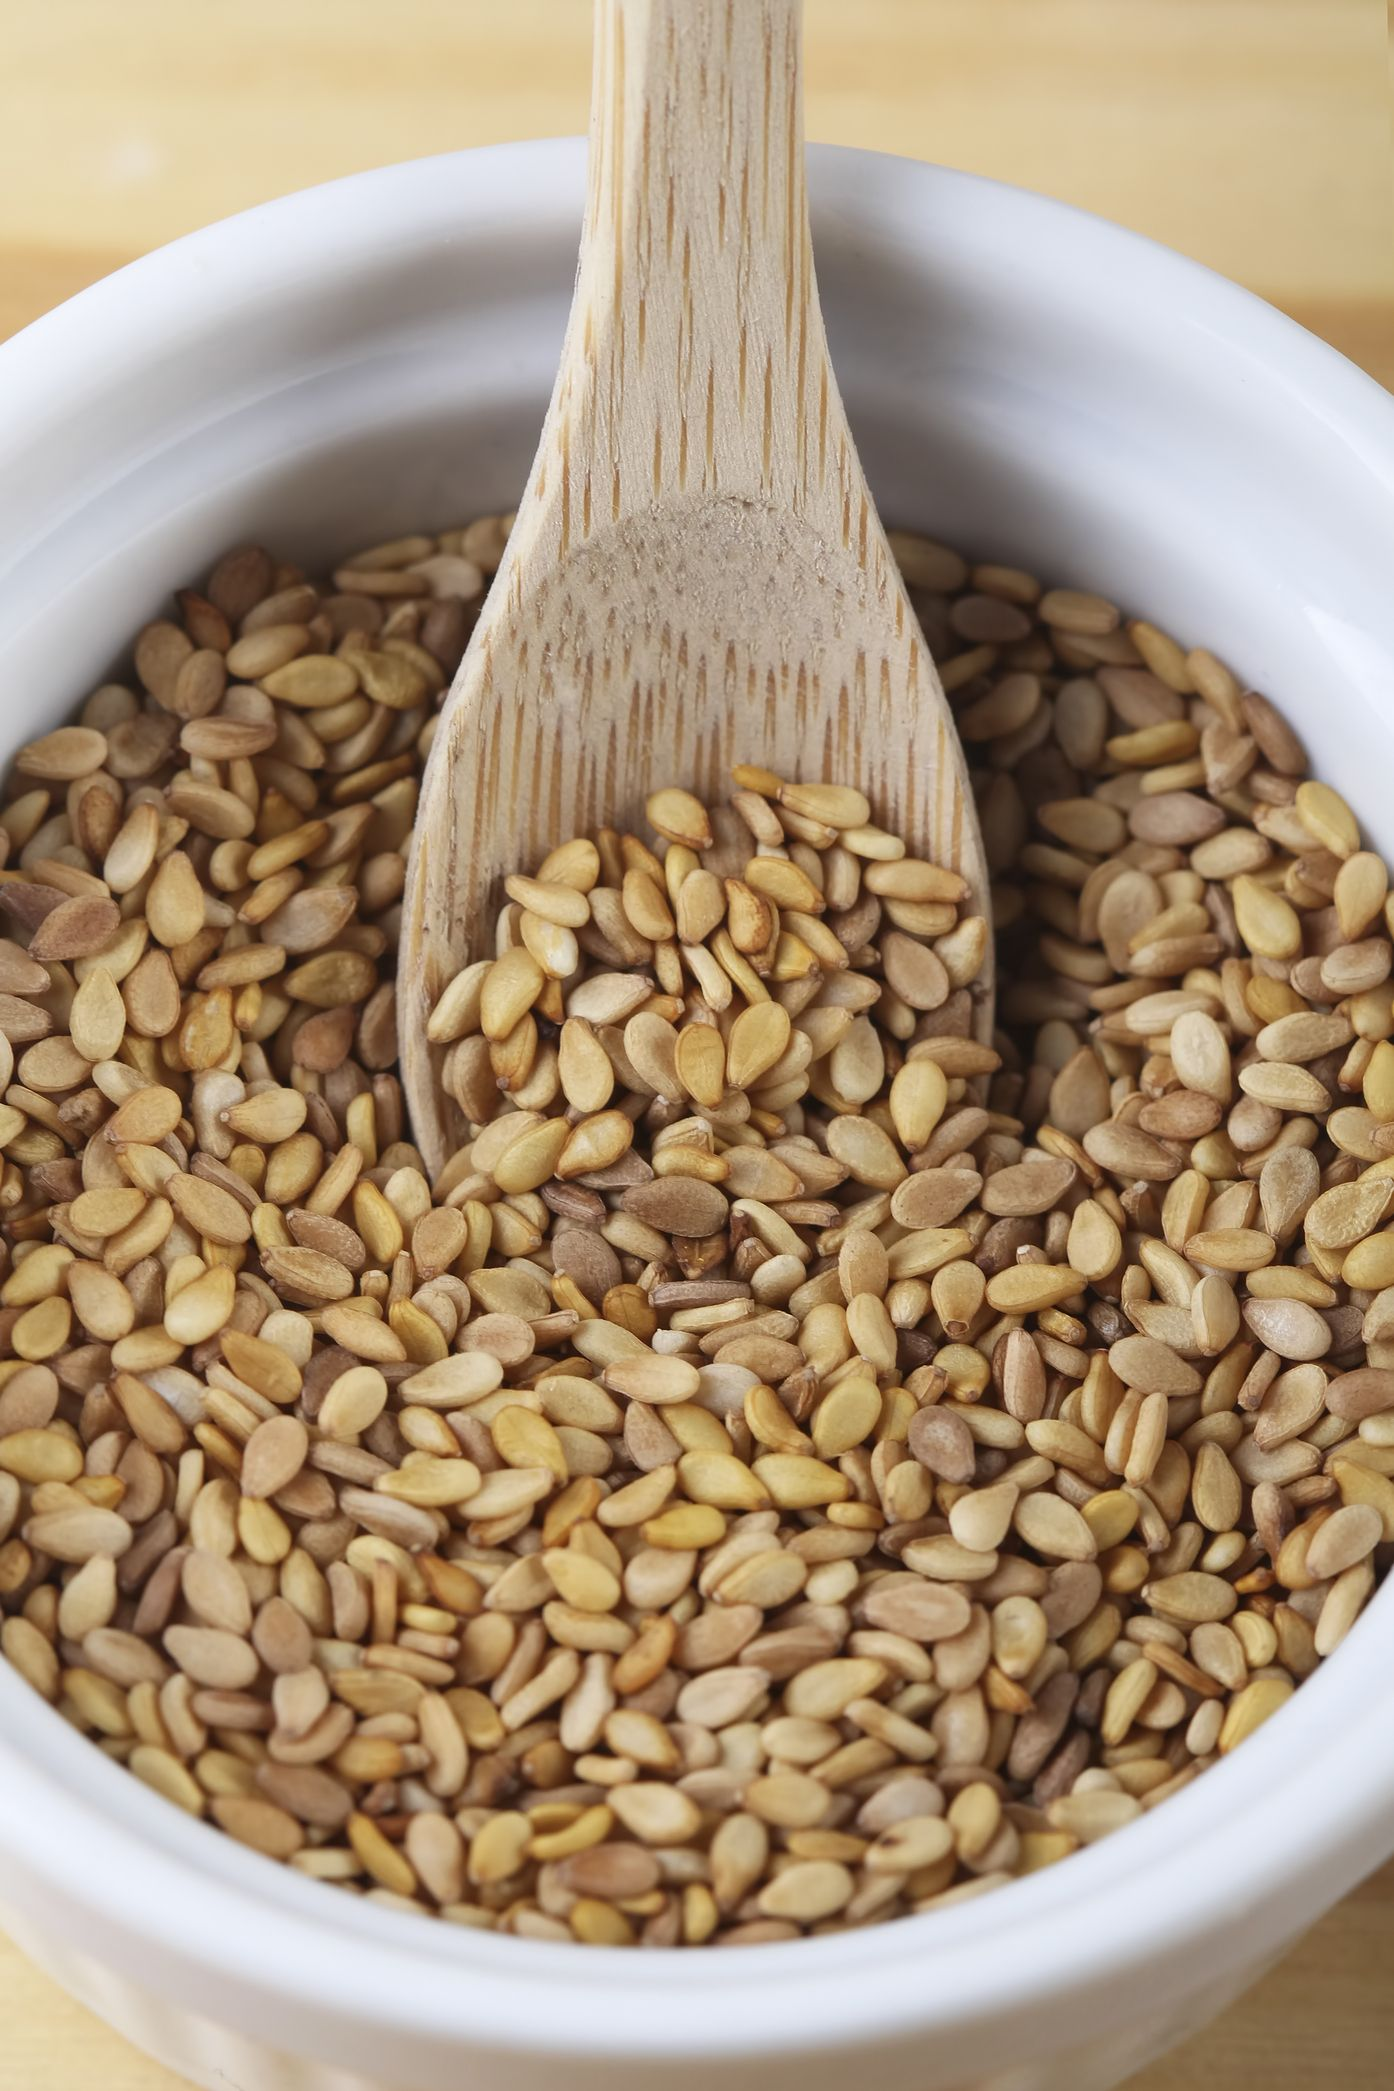 sesame seeds anti-aging foods for women